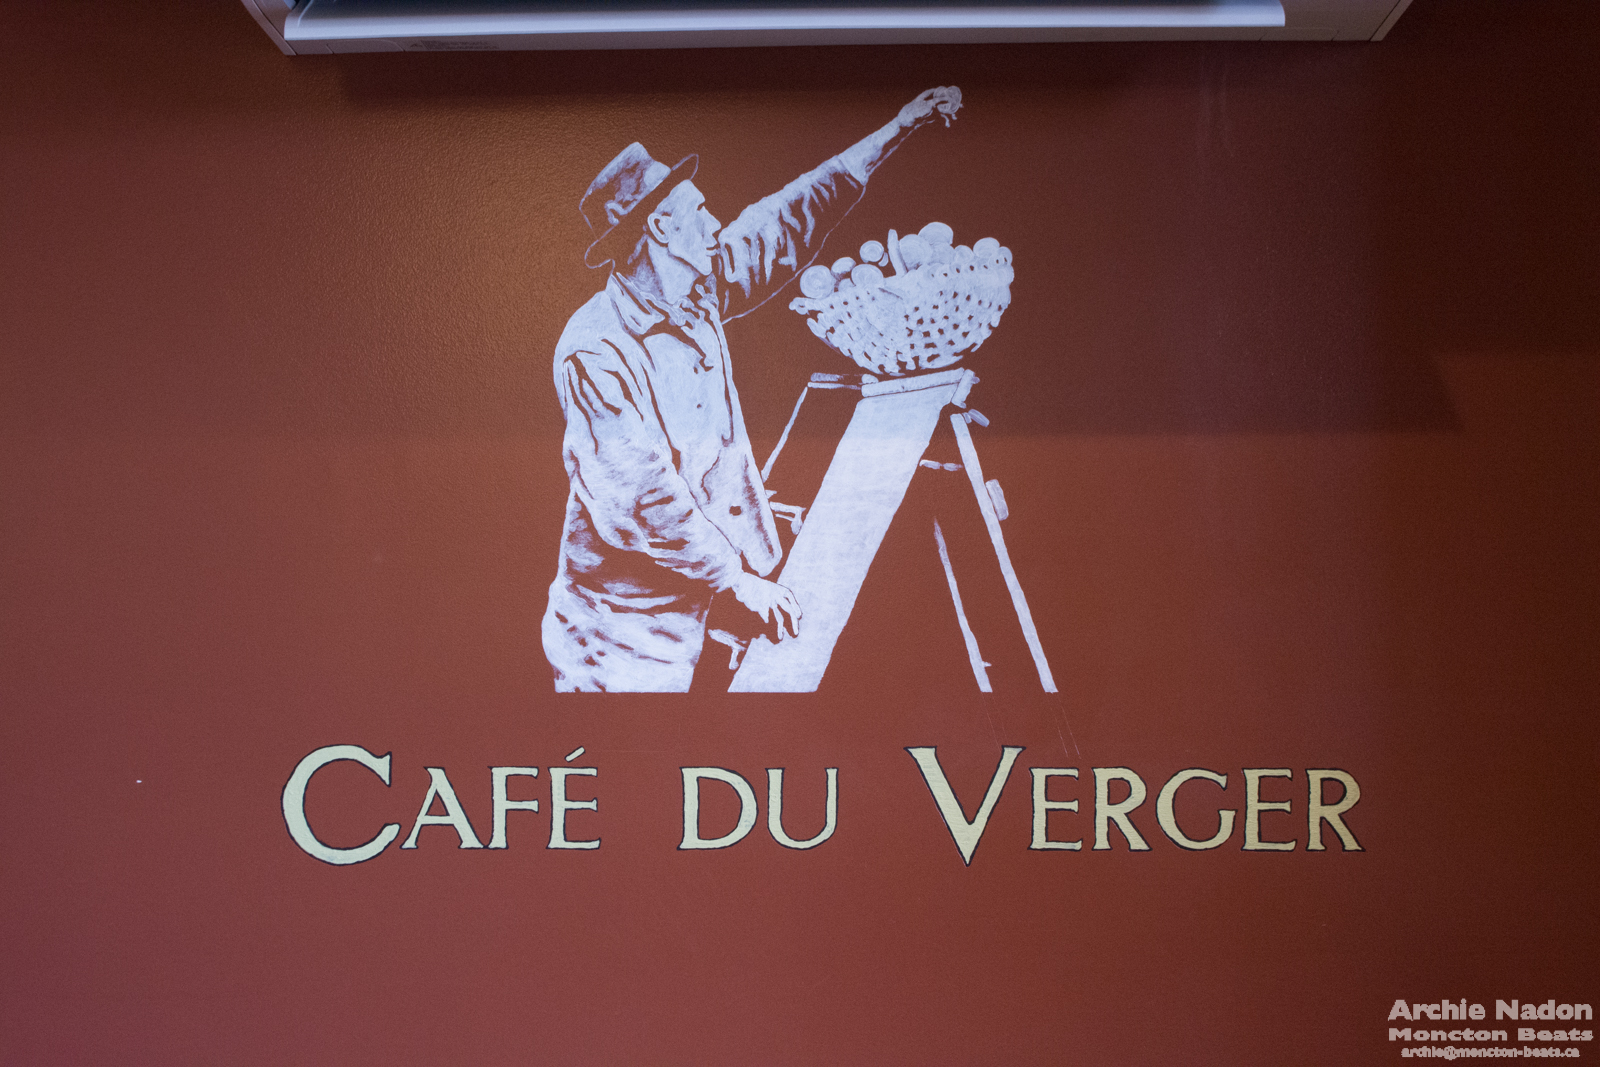 Café du verger sign of apple picker